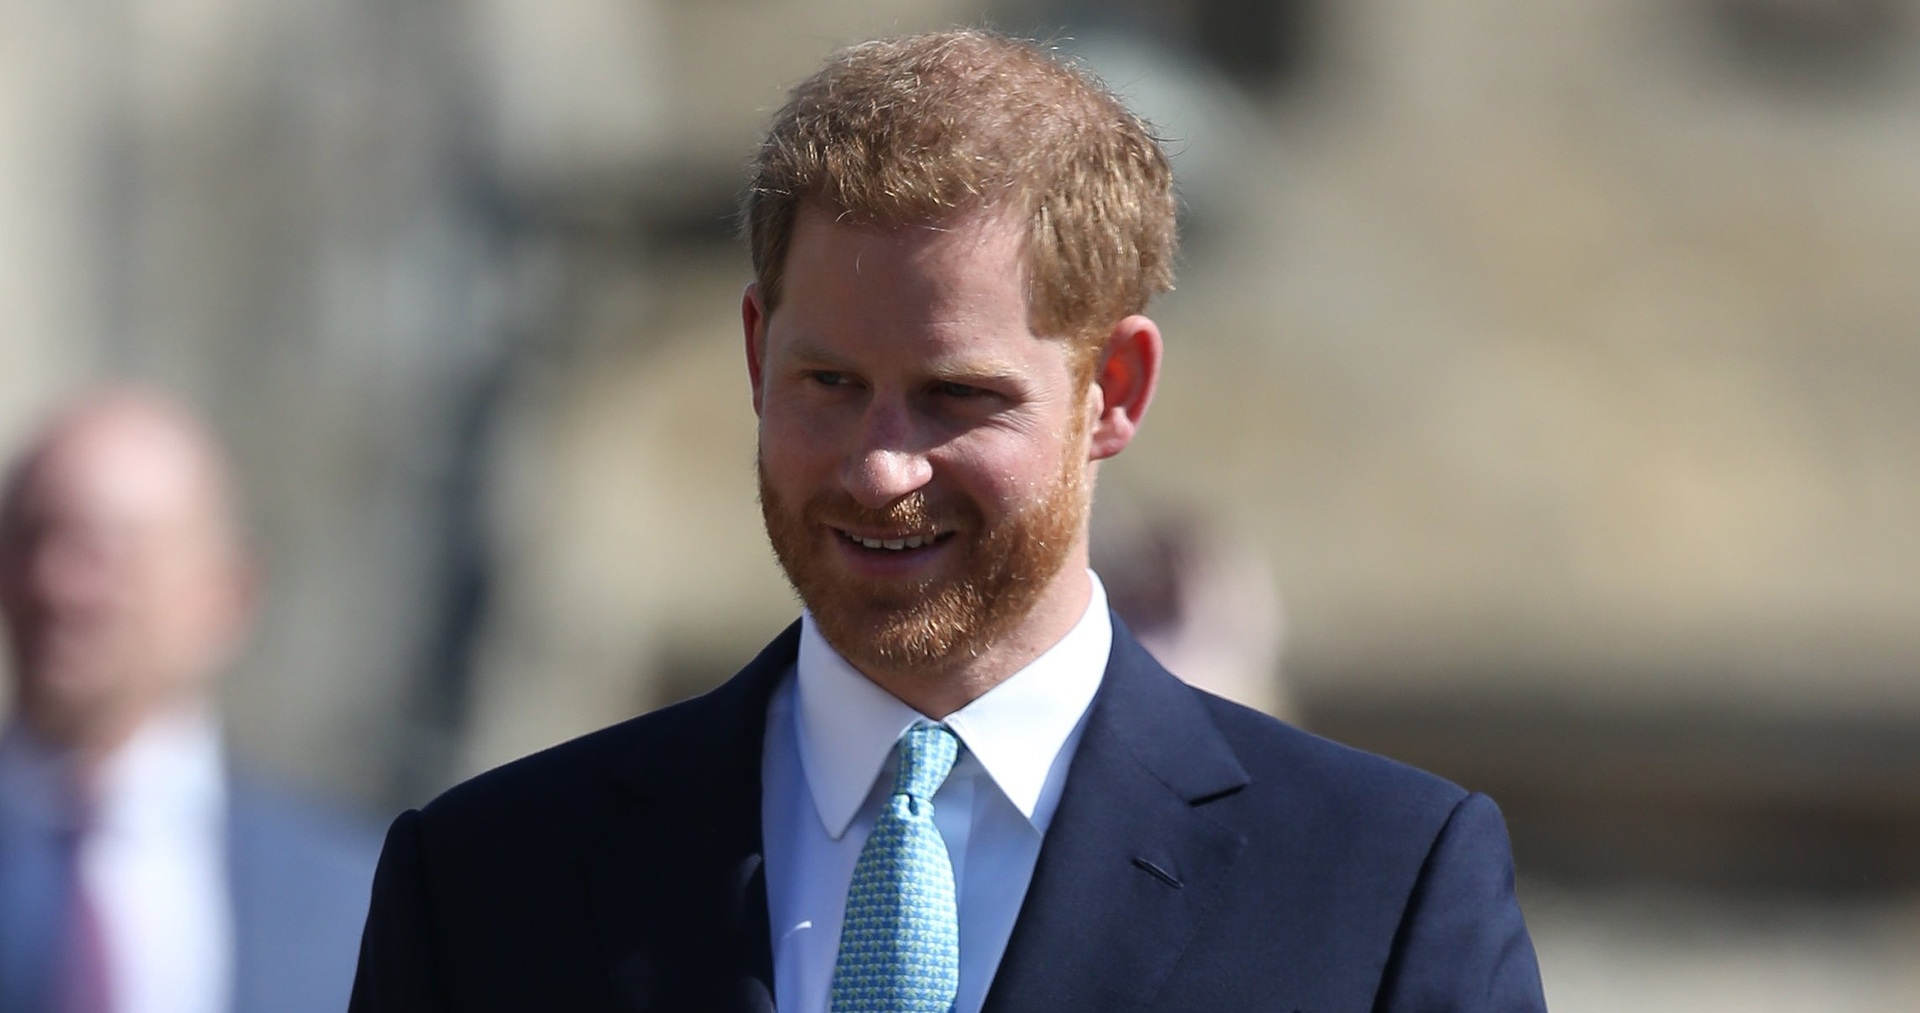 Prince Harry reveals passion for photography on Sussex Royal Instagram